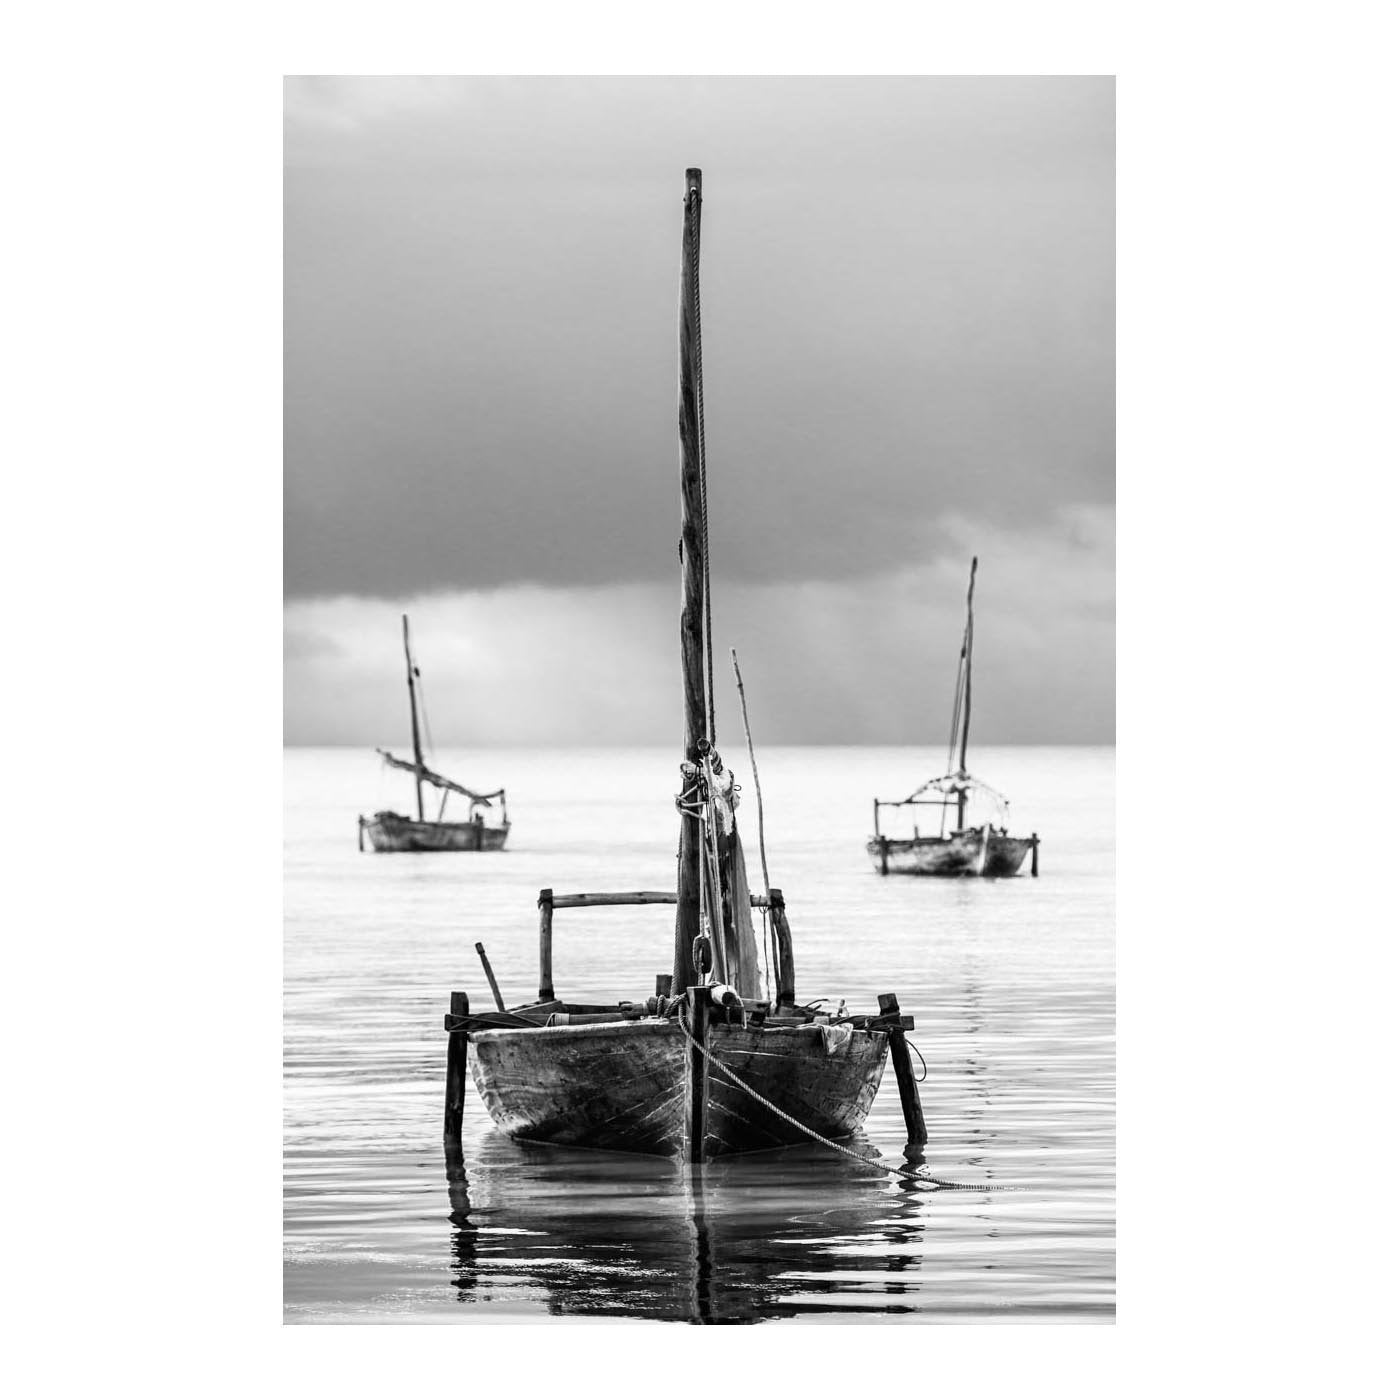 ZAN_15 BY DAVID BALLAM PHOTOGRAPHY. Dhow II, Nungwi, Zanzibar of Asante Sana Collection. A typical view of traditional outrigger boats, or Ngwalas, used by the Swahili people on the island of Zanzibar.